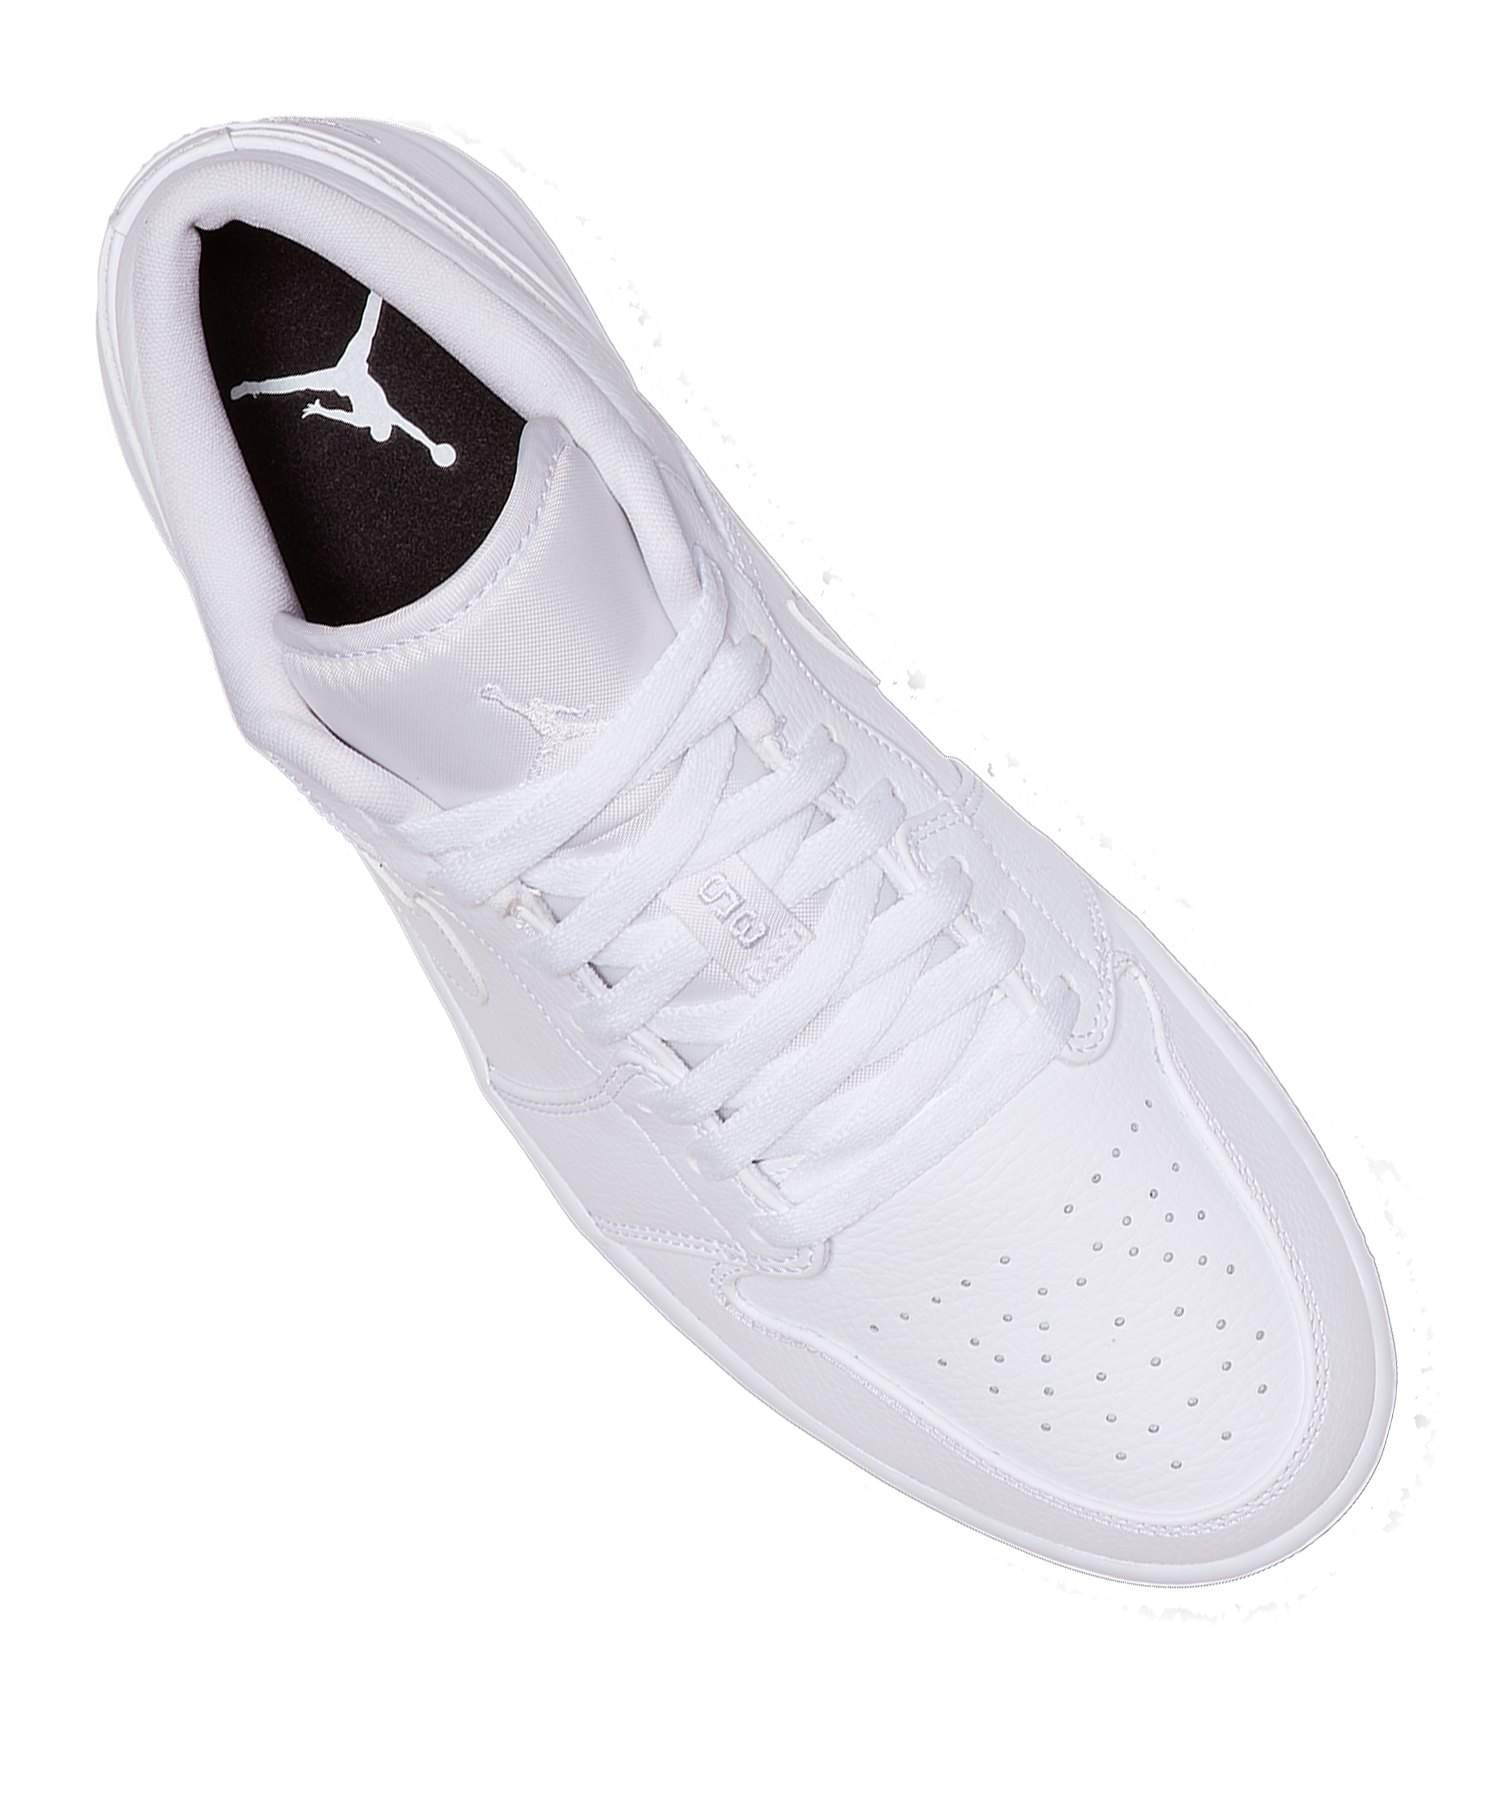 new style a8b6e 16fb9 ... Jordan Air 1 Low Sneaker Weiss F112 - Weiss ...